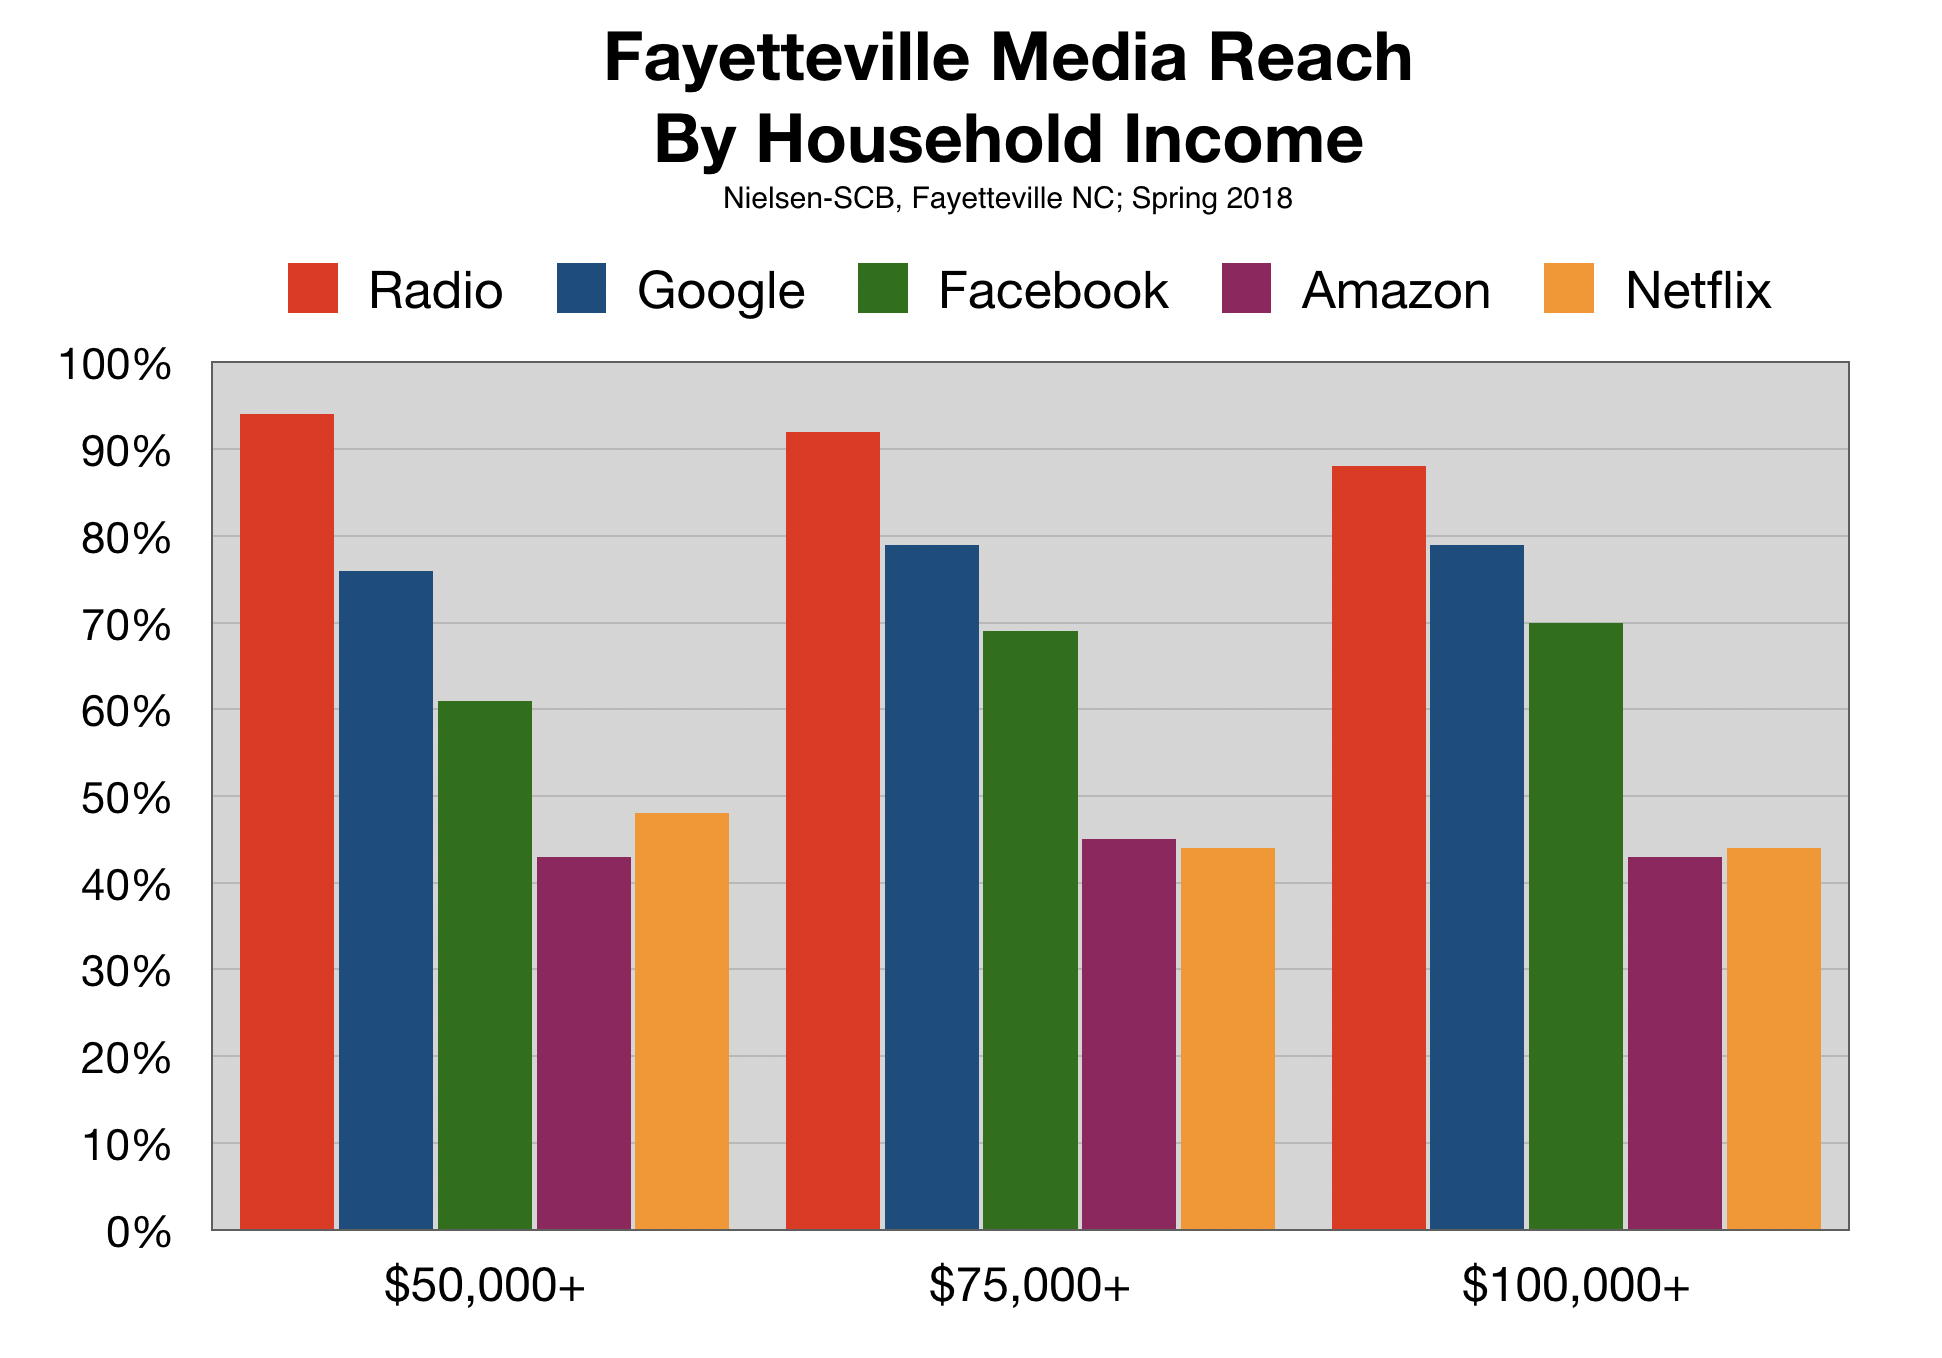 Advertise In Fayetteville Radio vs Online Income